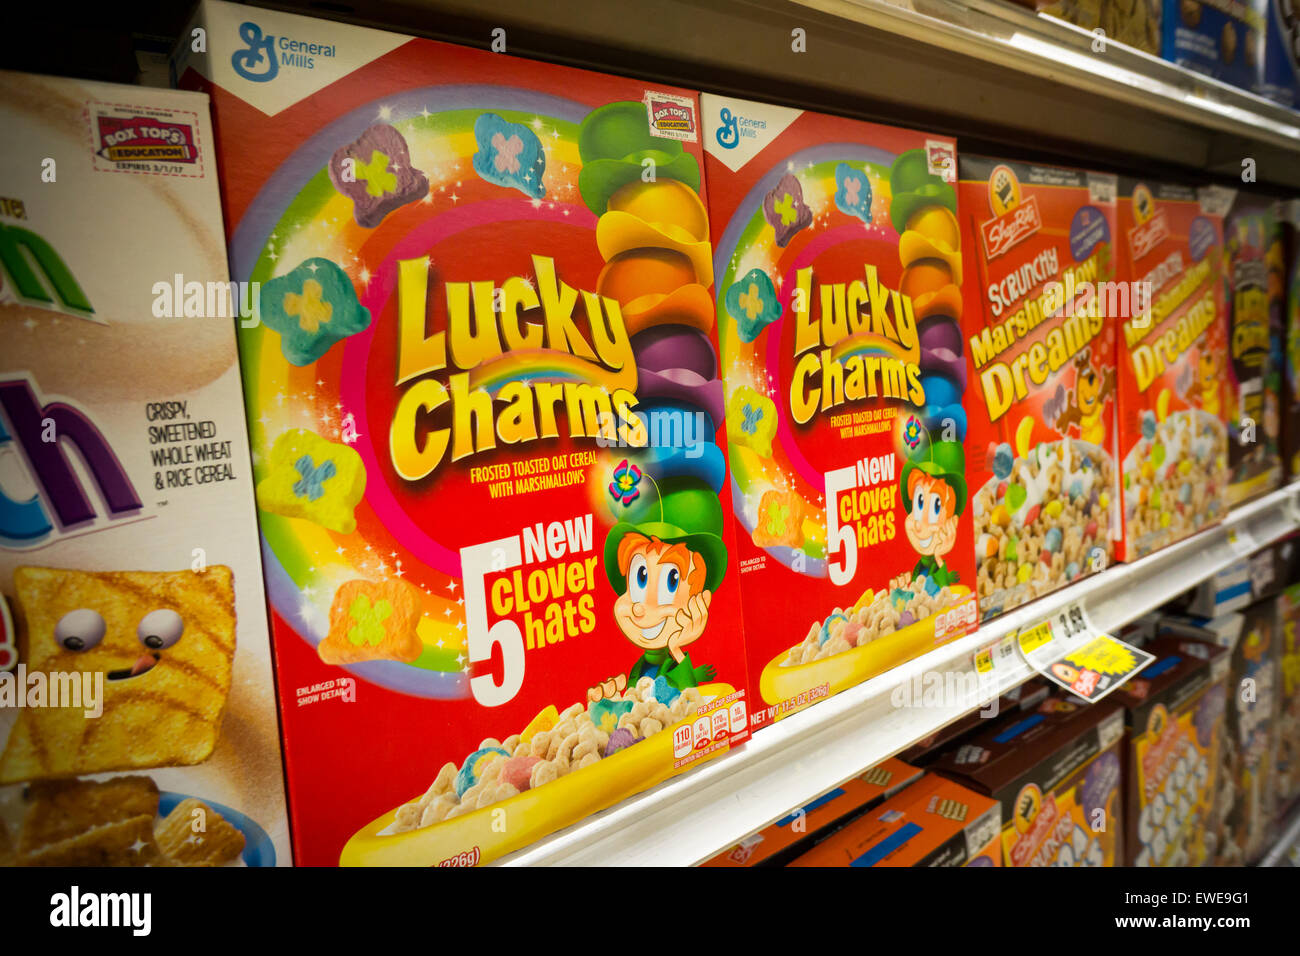 Boxes of General Mills breakfast cereals including Lucky Charms displayed on supermarket shelves in New York on - Stock Image